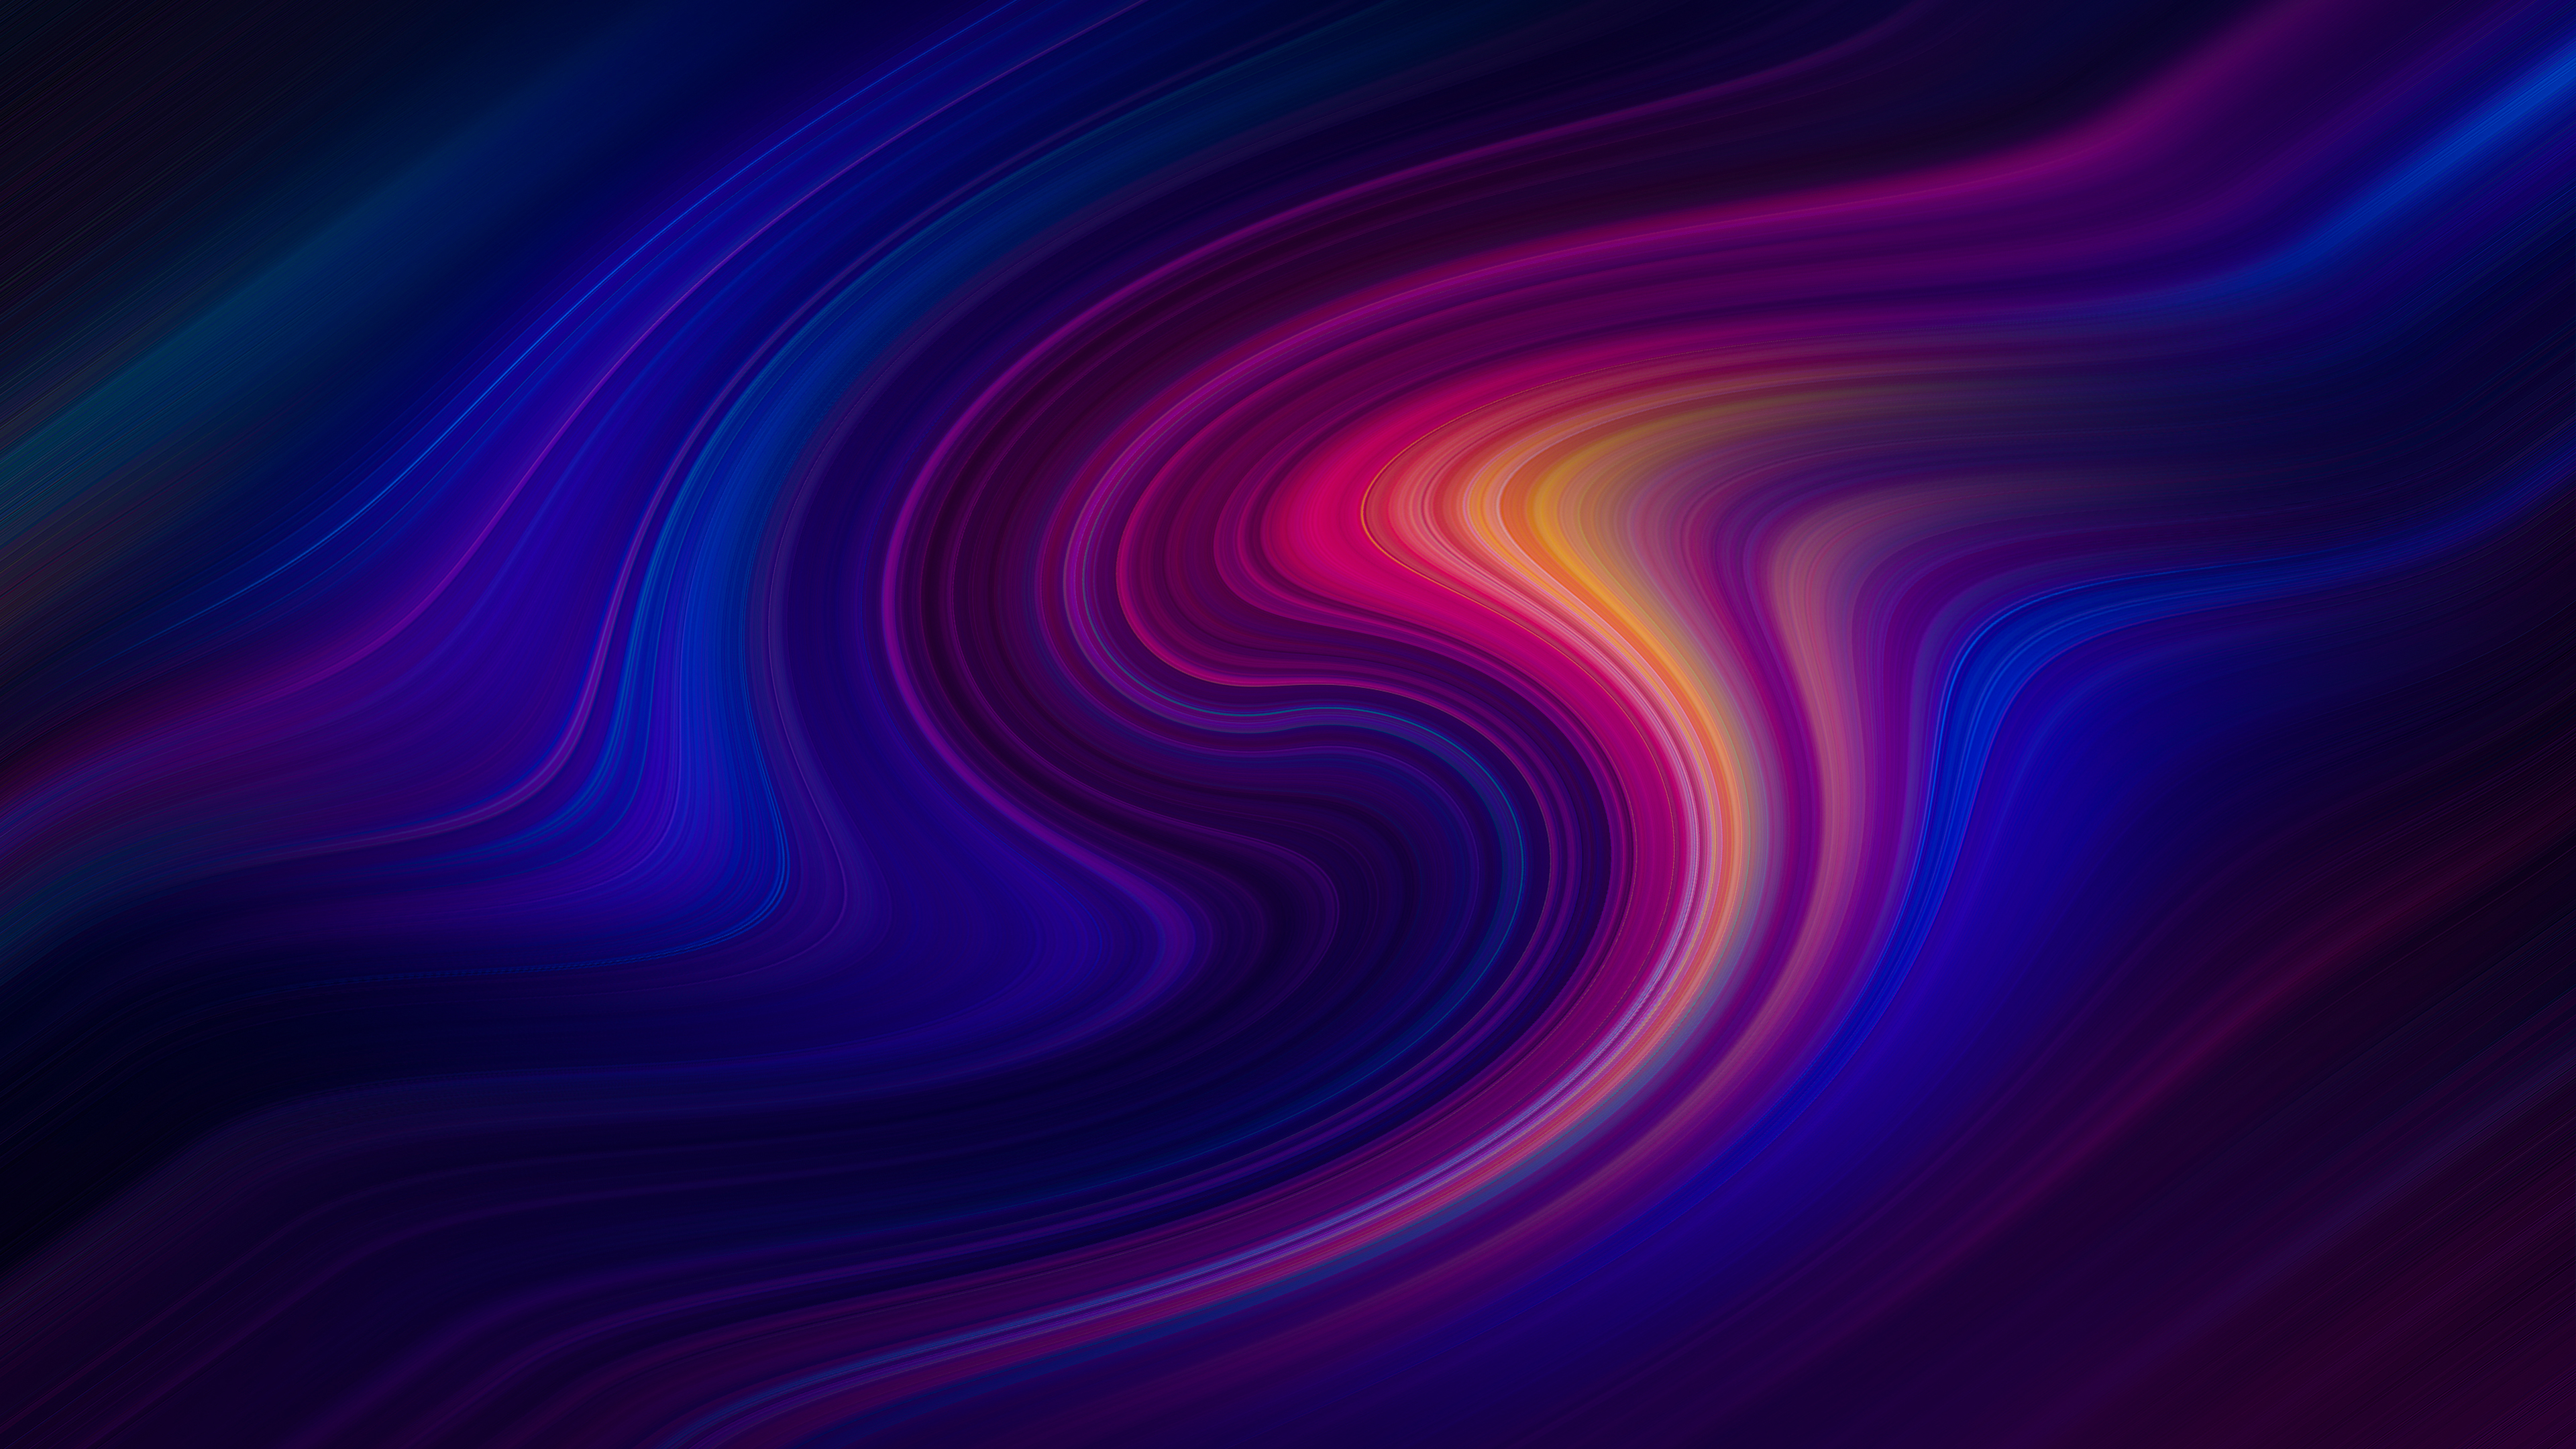 Swirl Digital Abstract Wallpaper HD Abstract 4K Wallpapers 3840x2160